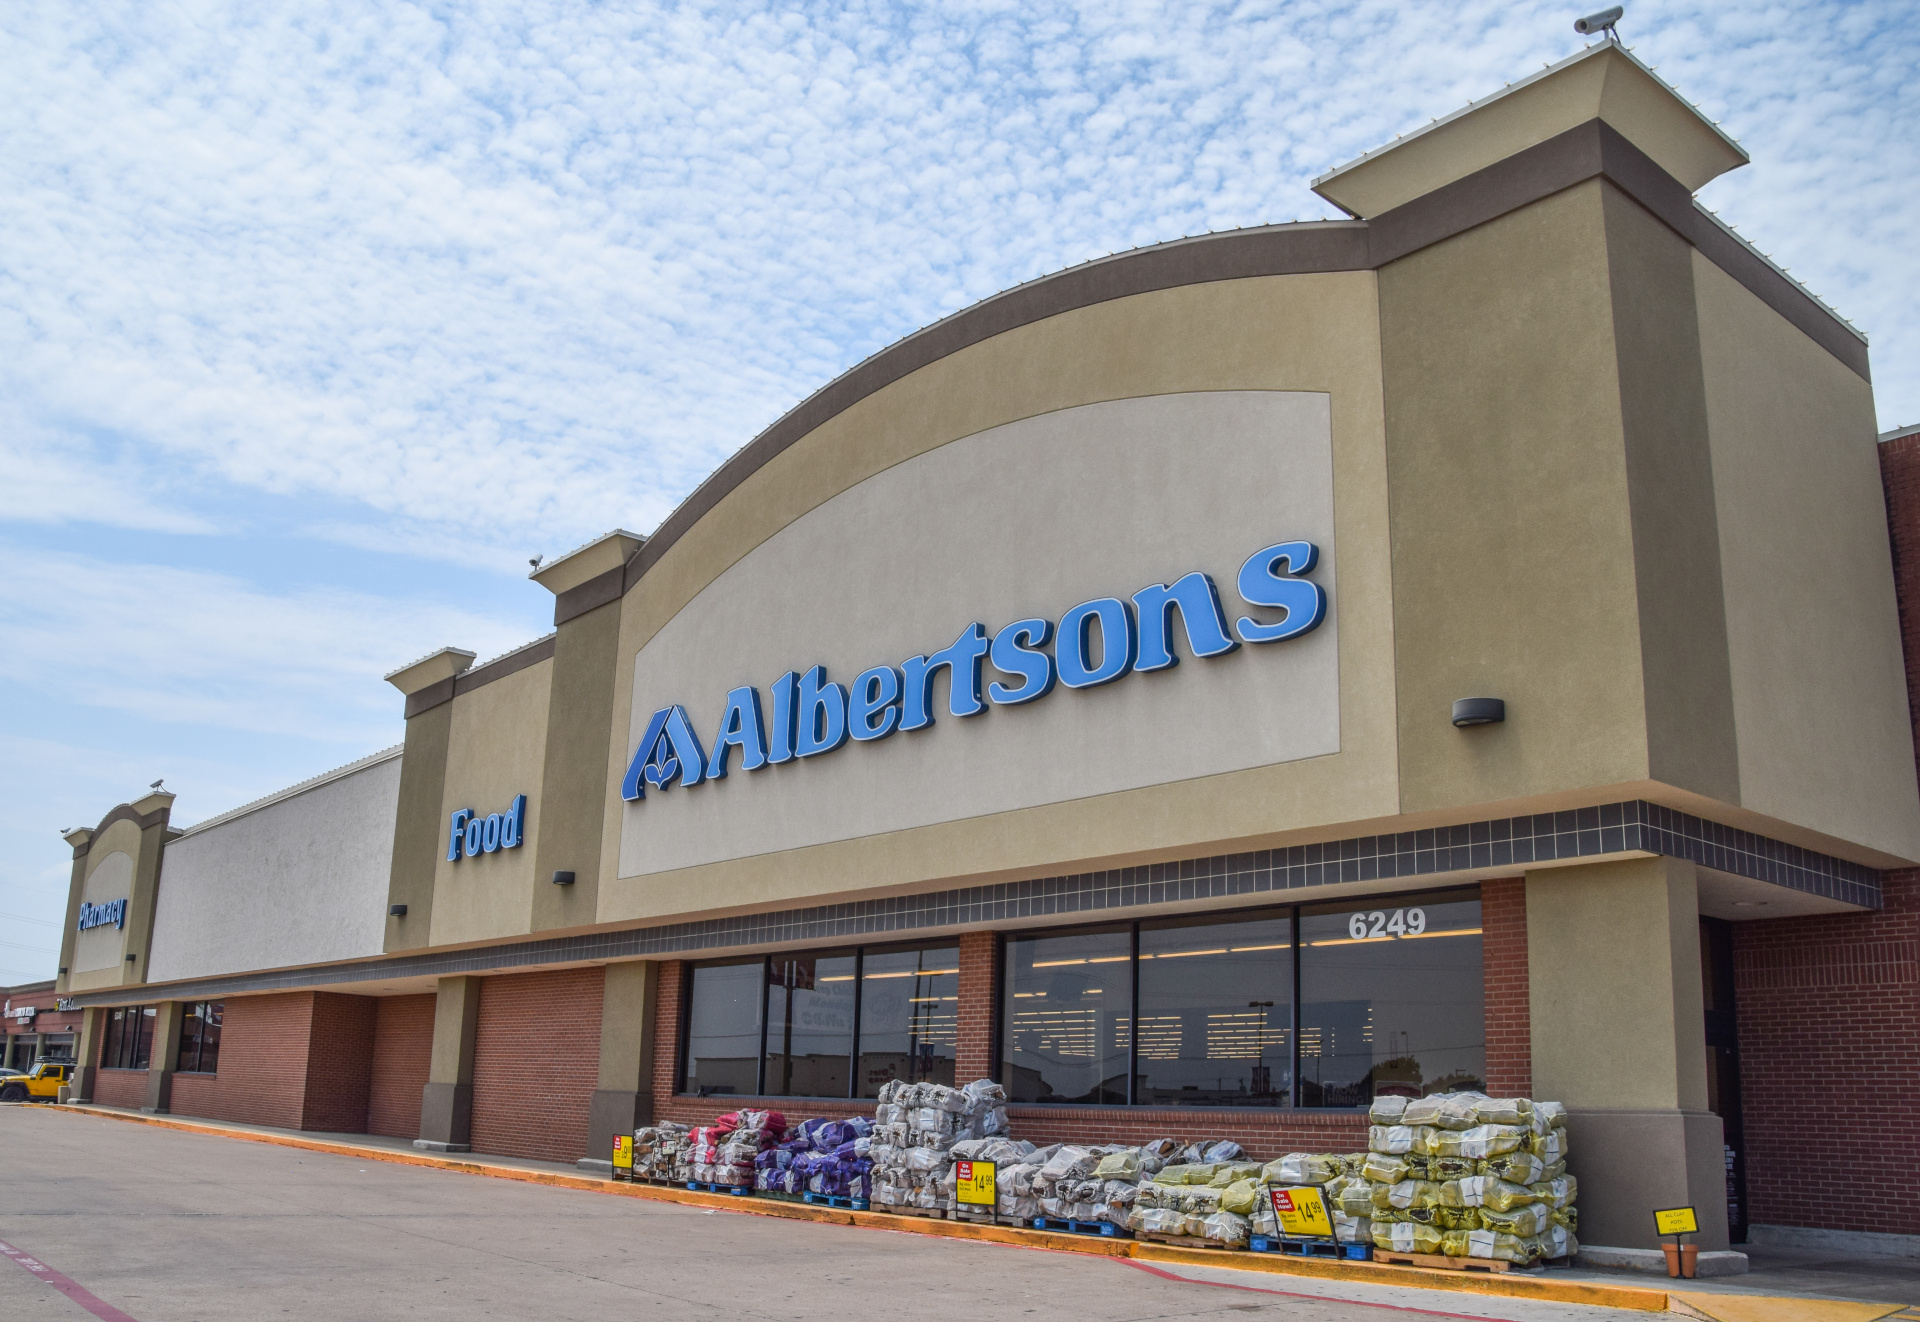 Albertson's, the grocery store anchor at the Watauga Albertsons shopping center in Watauga TX